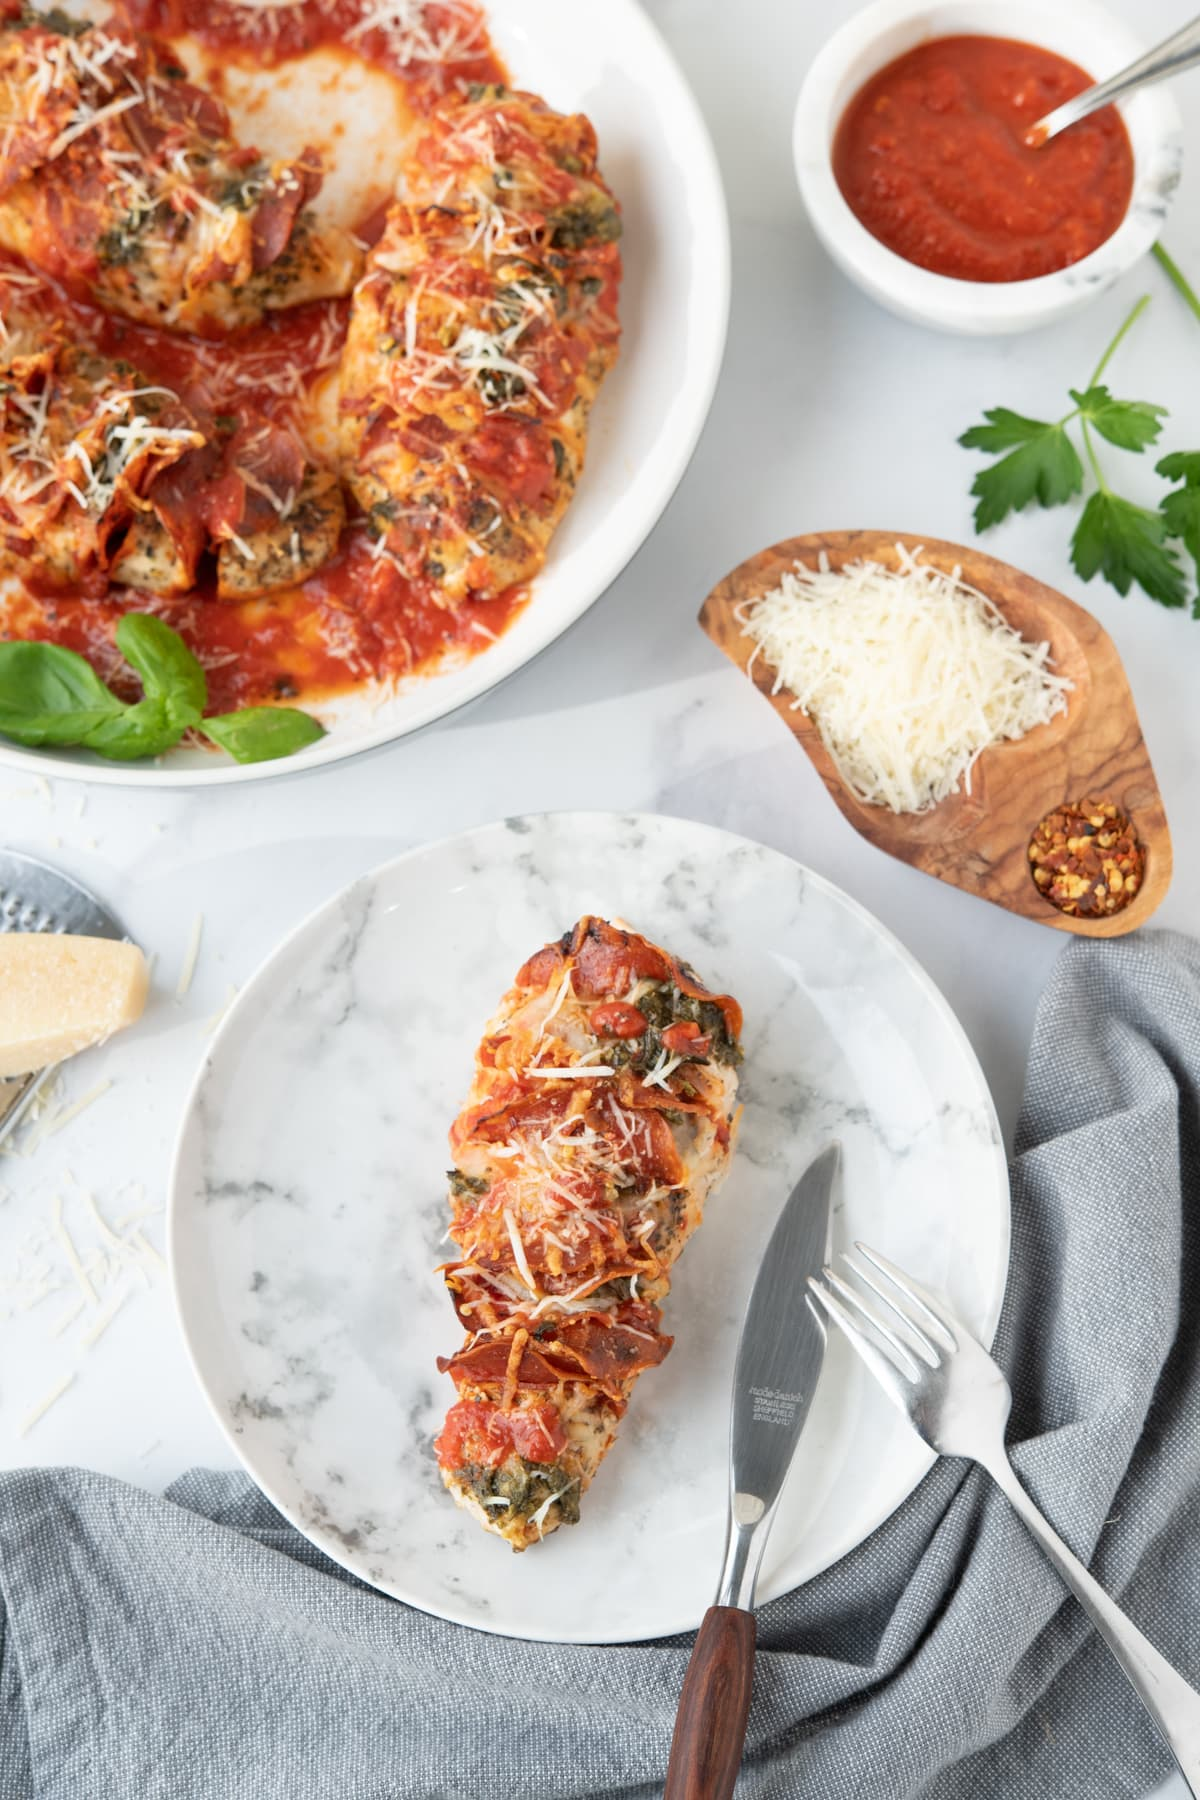 Chicken breasts with pepperoni, pizza sauce and cheese, garnished with cheese, pesto and basil in a white dish